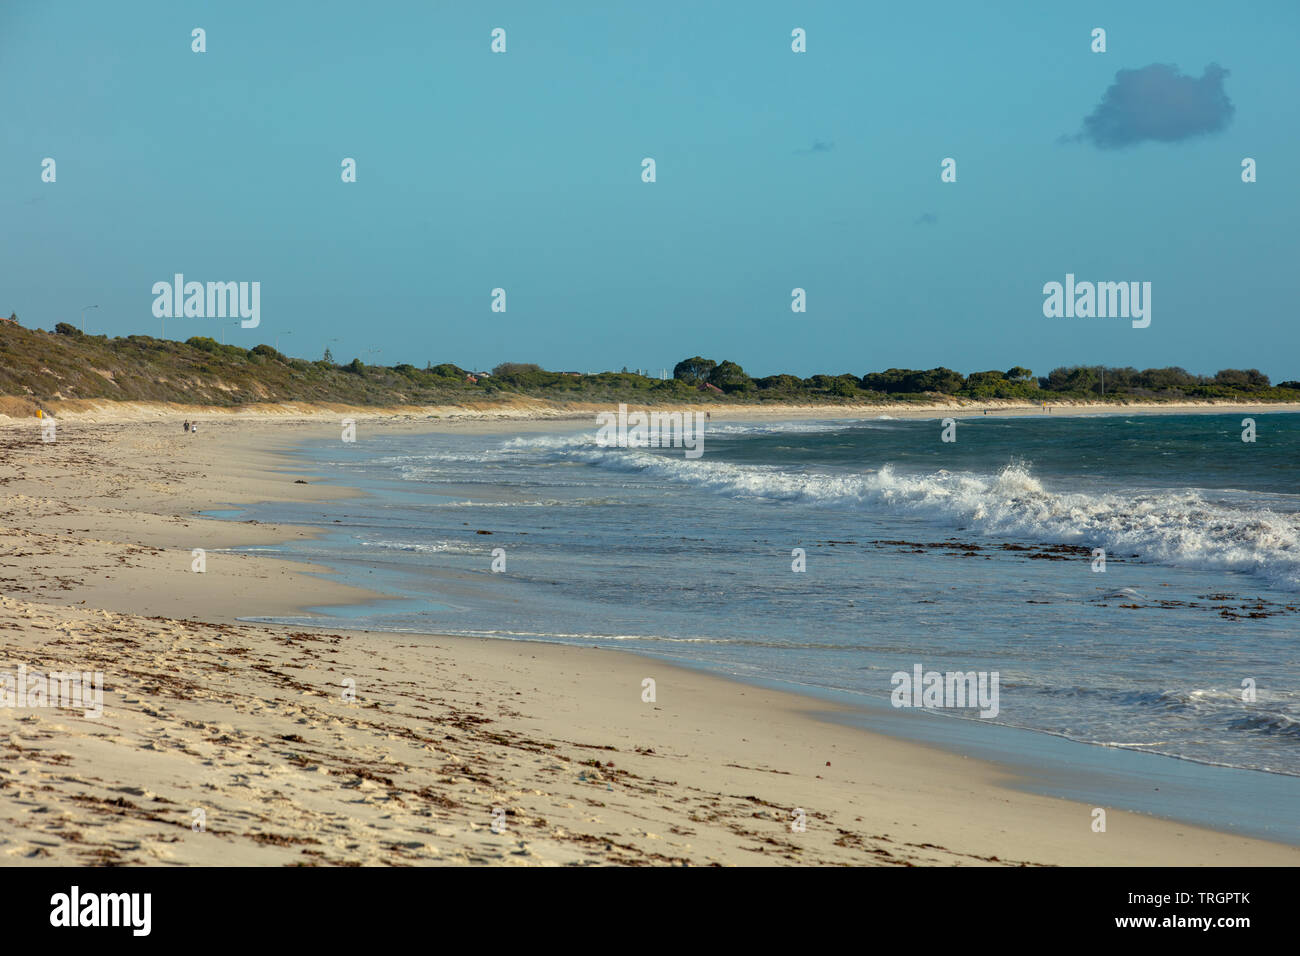 Part of Mullaloo beach in western Australia on a sunny but breezy autumn day in April with some people walking on the sand in the far distance. - Stock Image